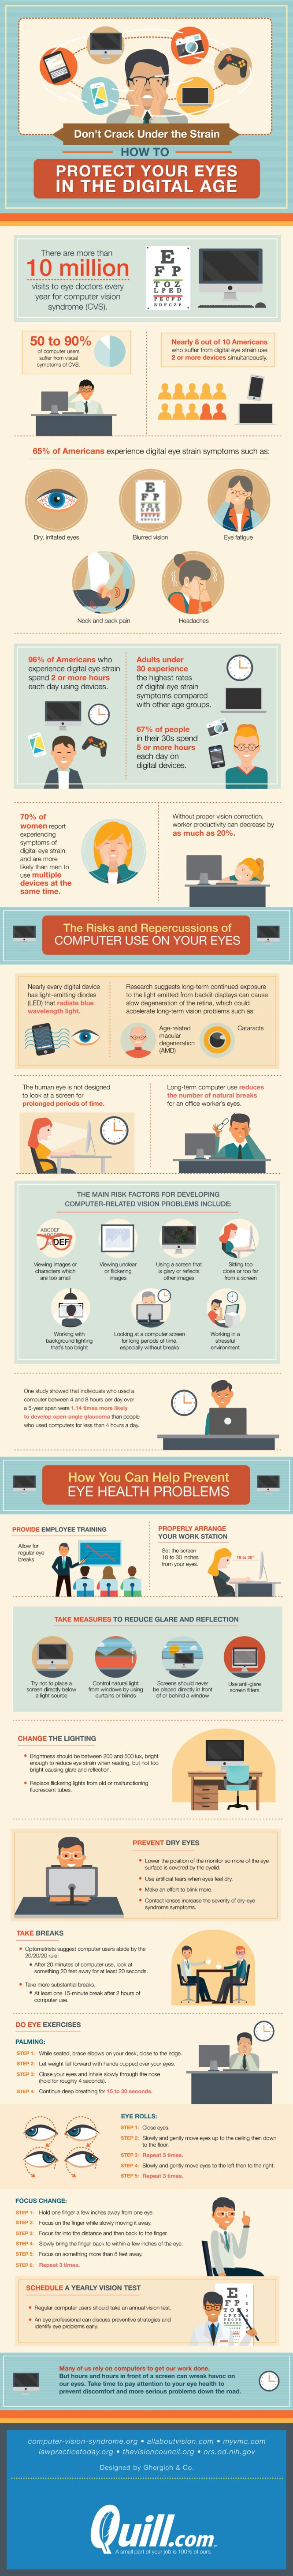 Protect Your Eyes from Computer Vision Syndrome - A Helpful infographic to help protect your vision health